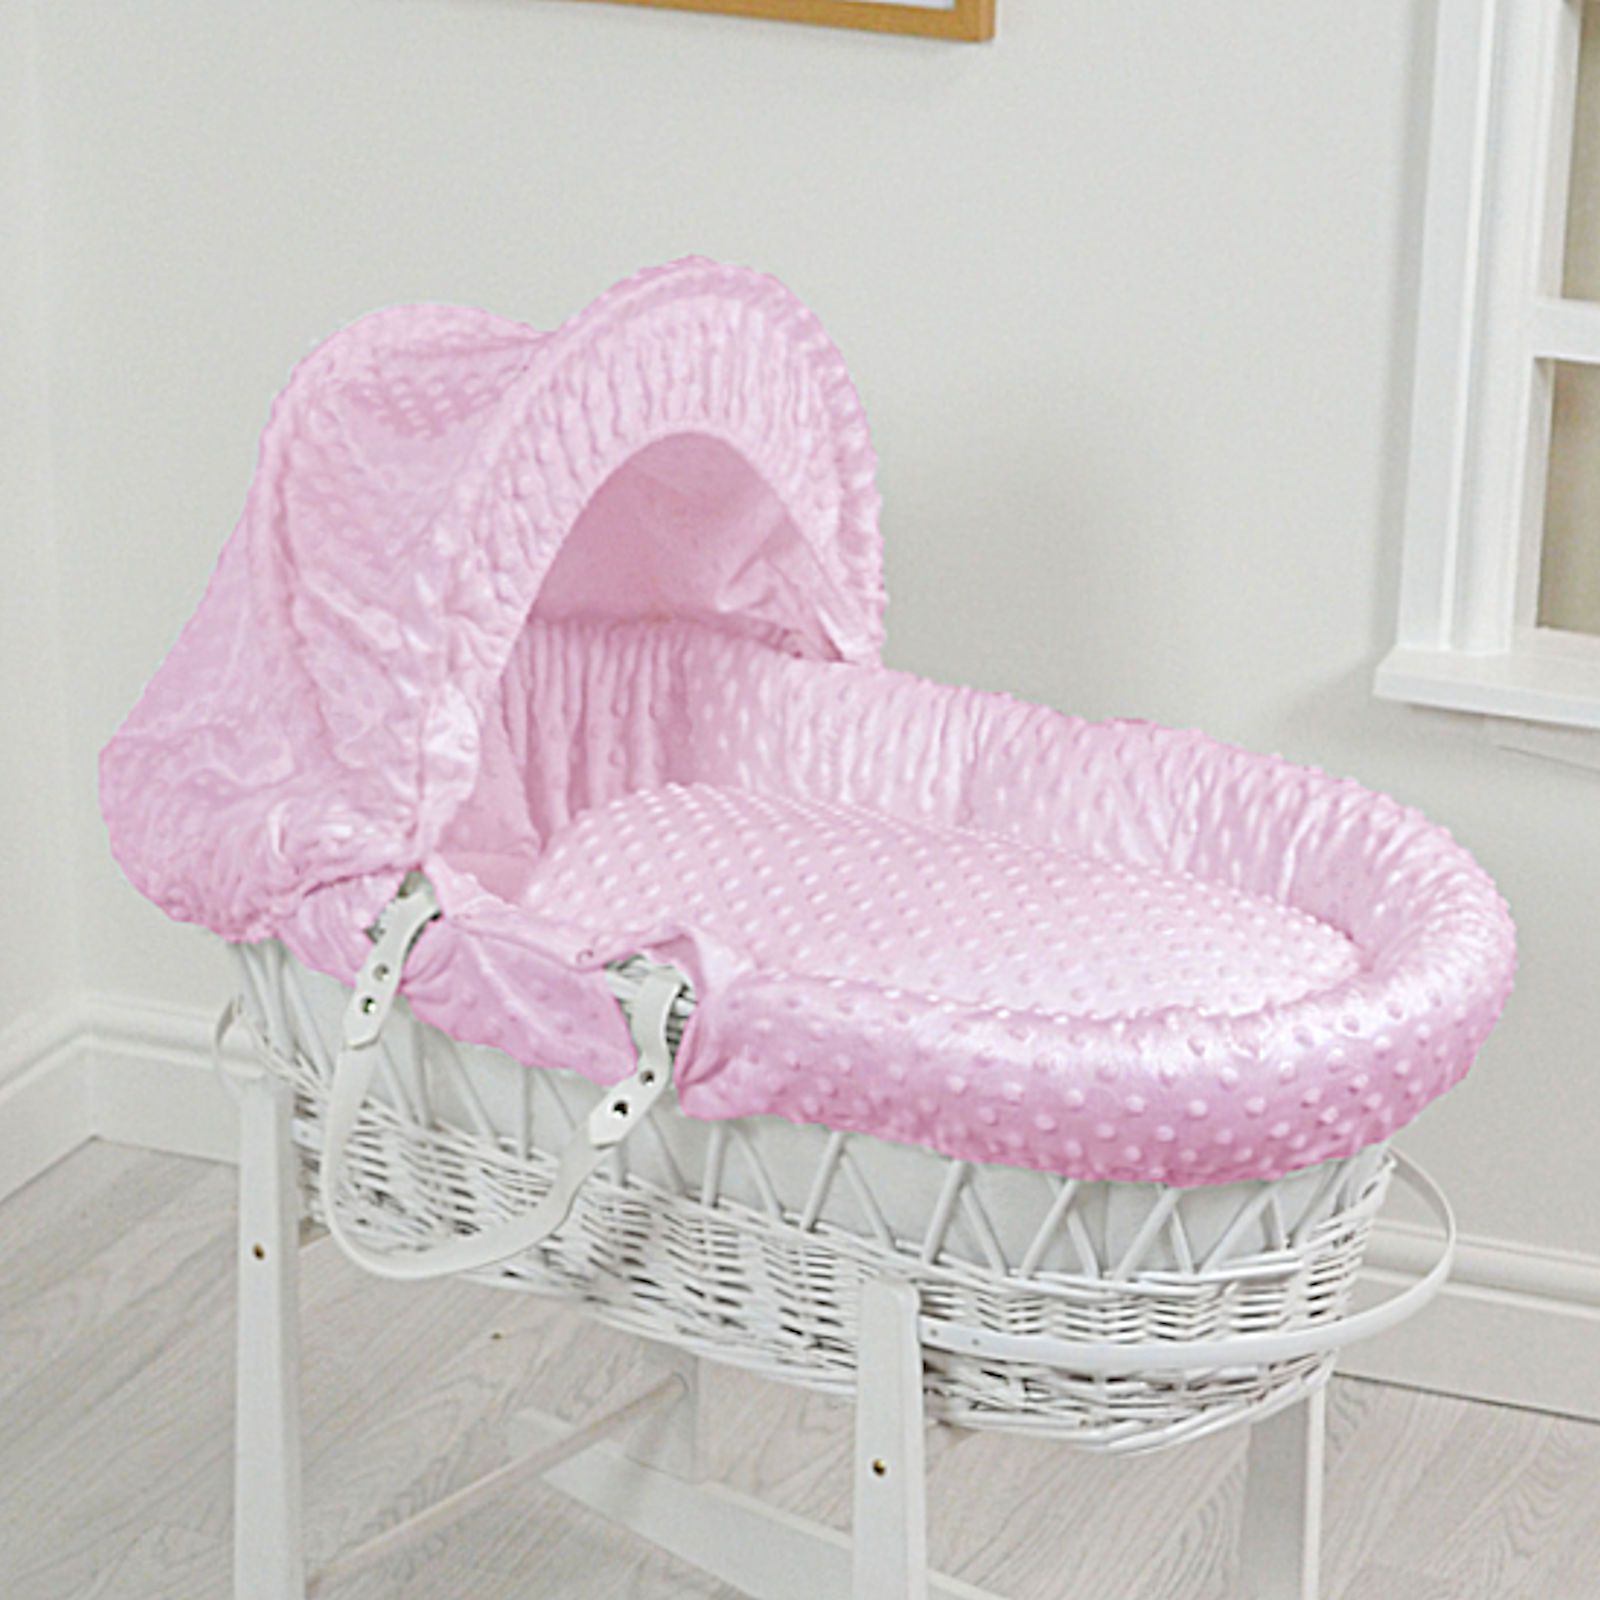 4baby Luxury Padded White Wicker Baby Moses Basket Pink Dimple At Online4baby